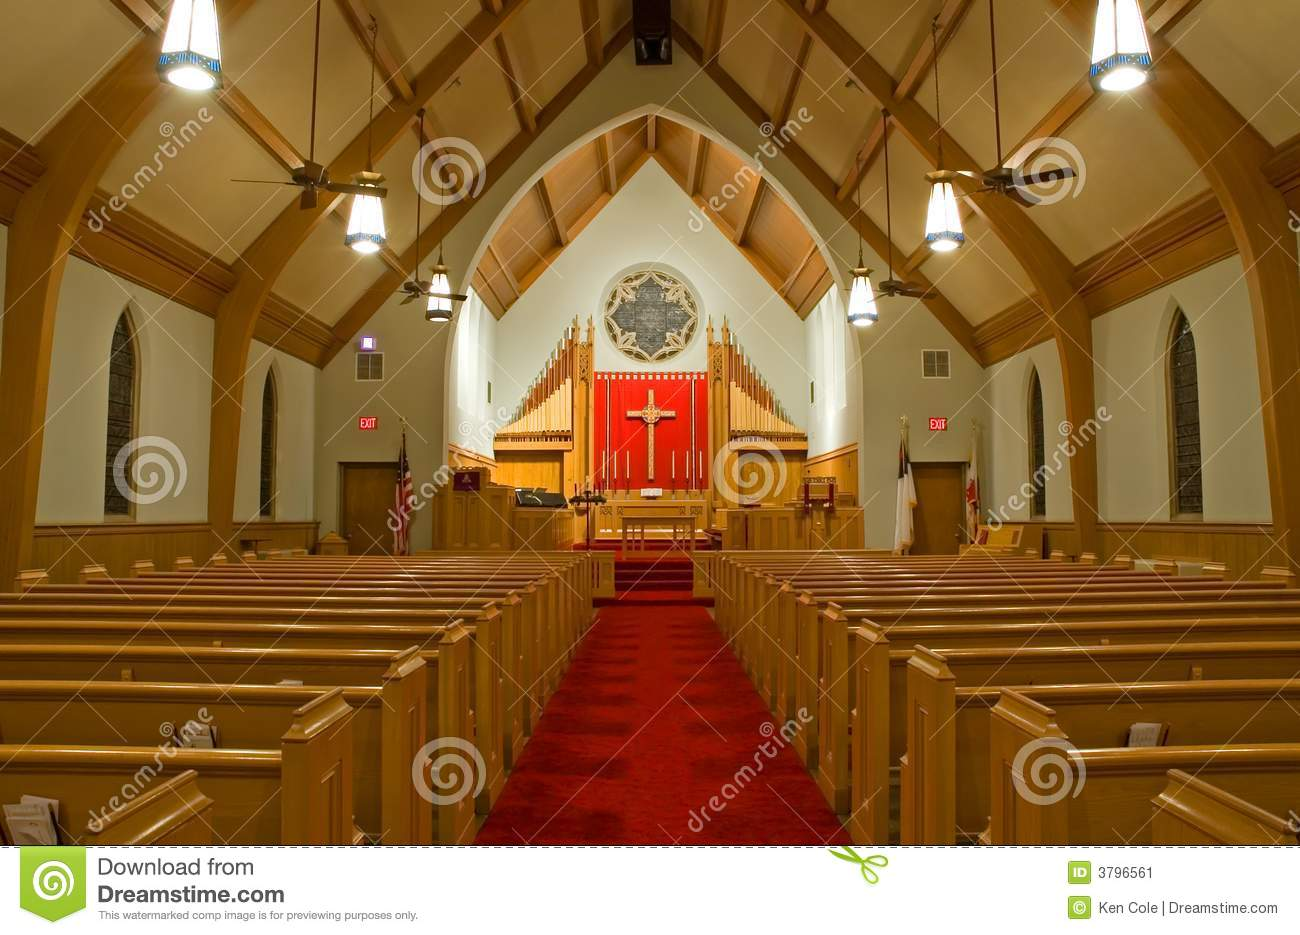 view of the inside of a modern Protestant church sanctuary.